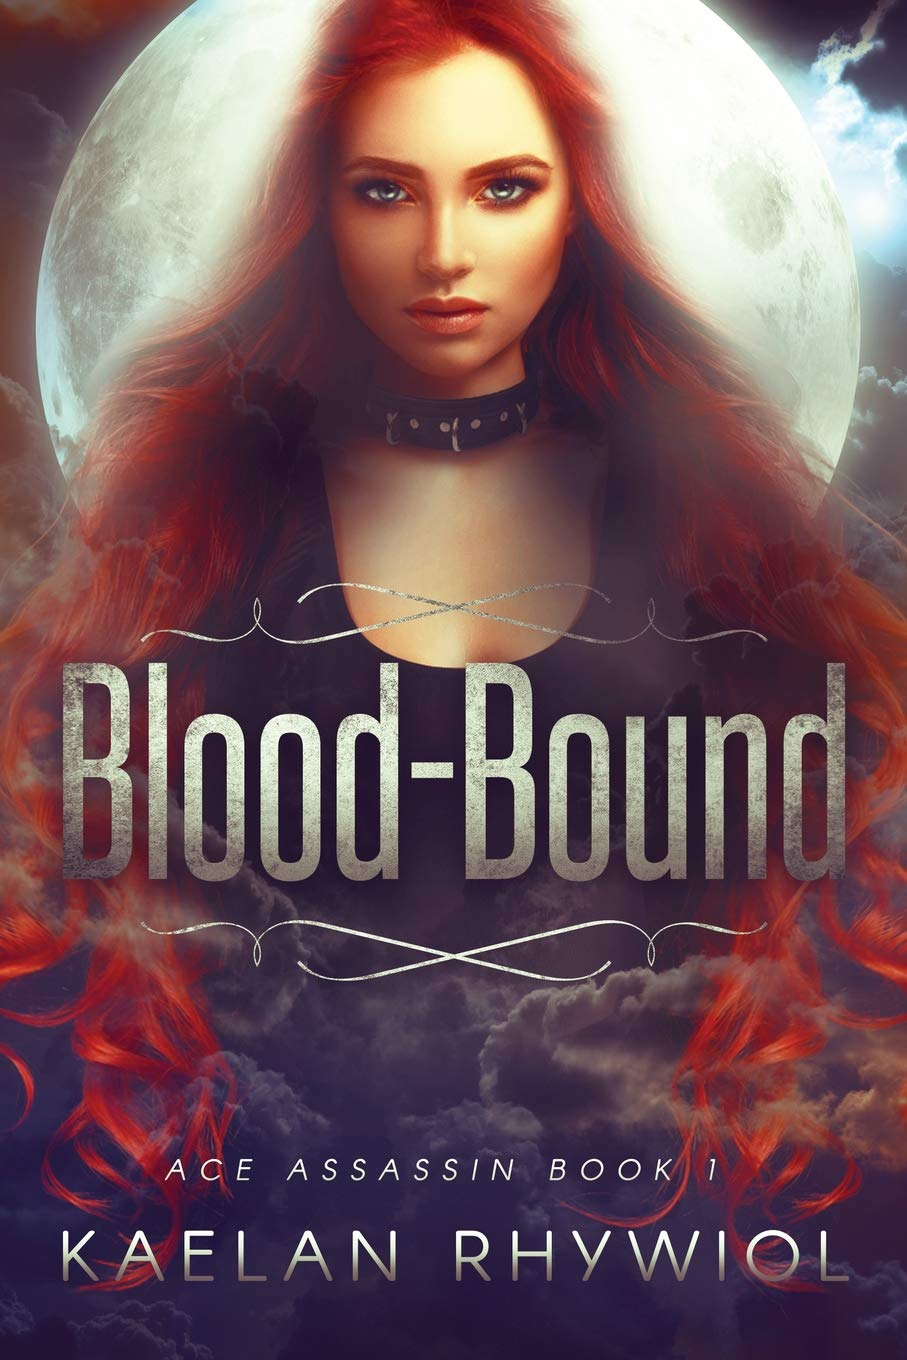 Image result for blood-bound kaelan rhywiol